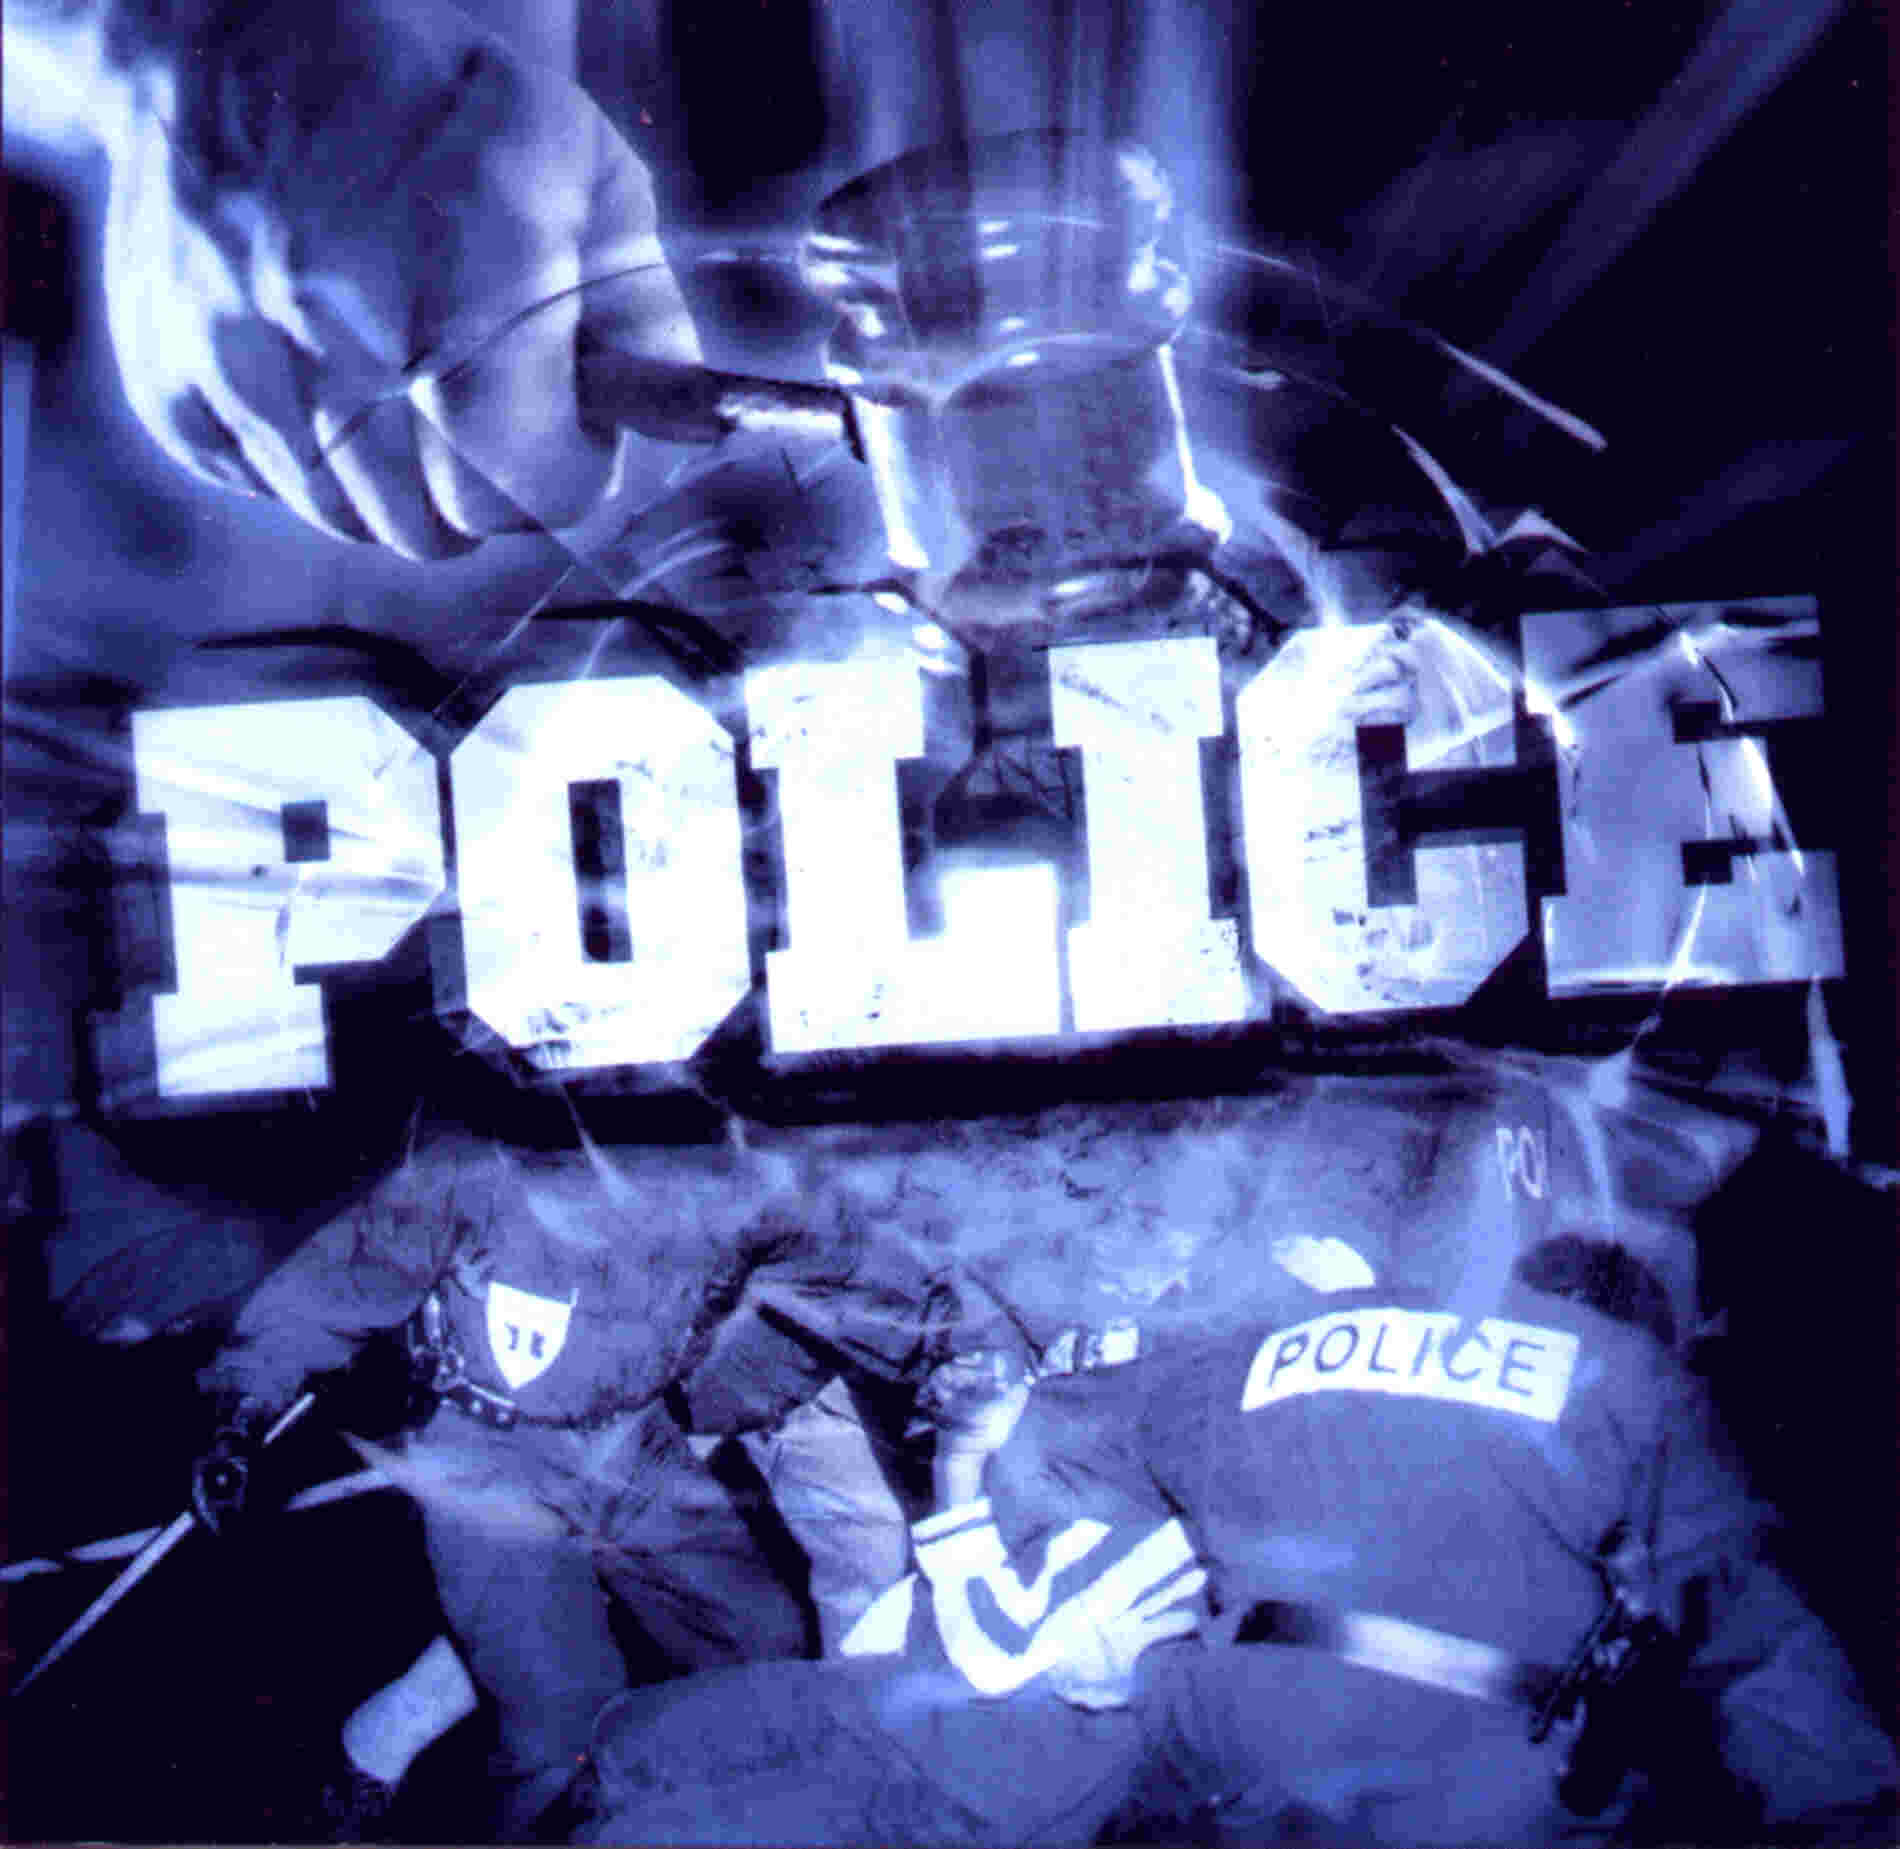 http://www.chez.com/ralphlo/covers/image/compil_police_front.jpg